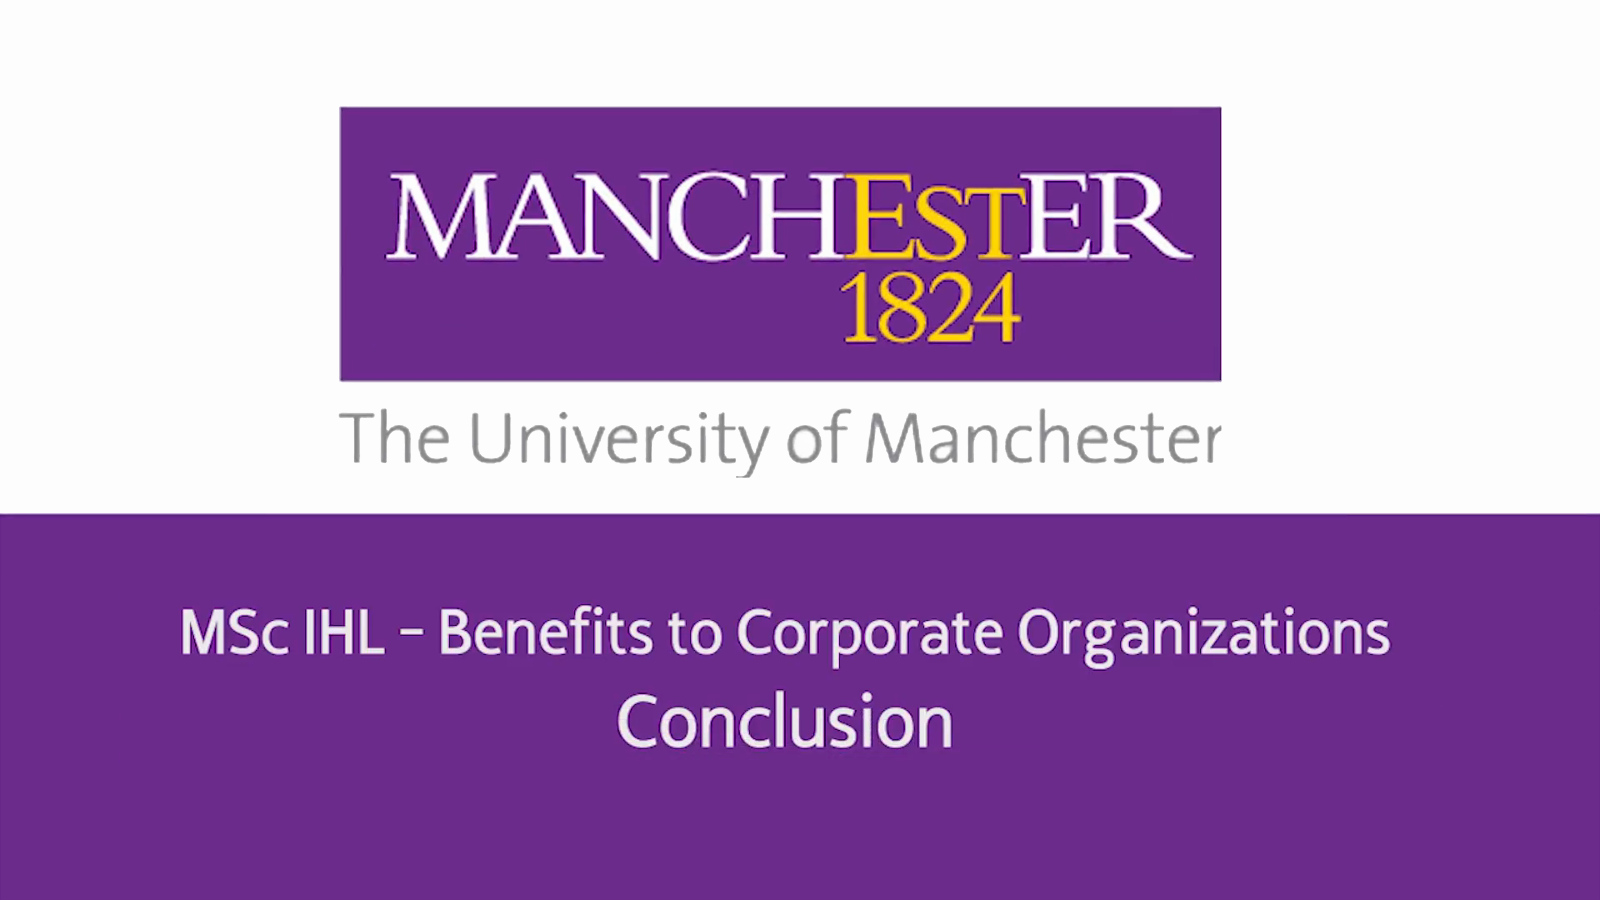 MSc IHL - Benefits to Corporate Organizations - Conclusion